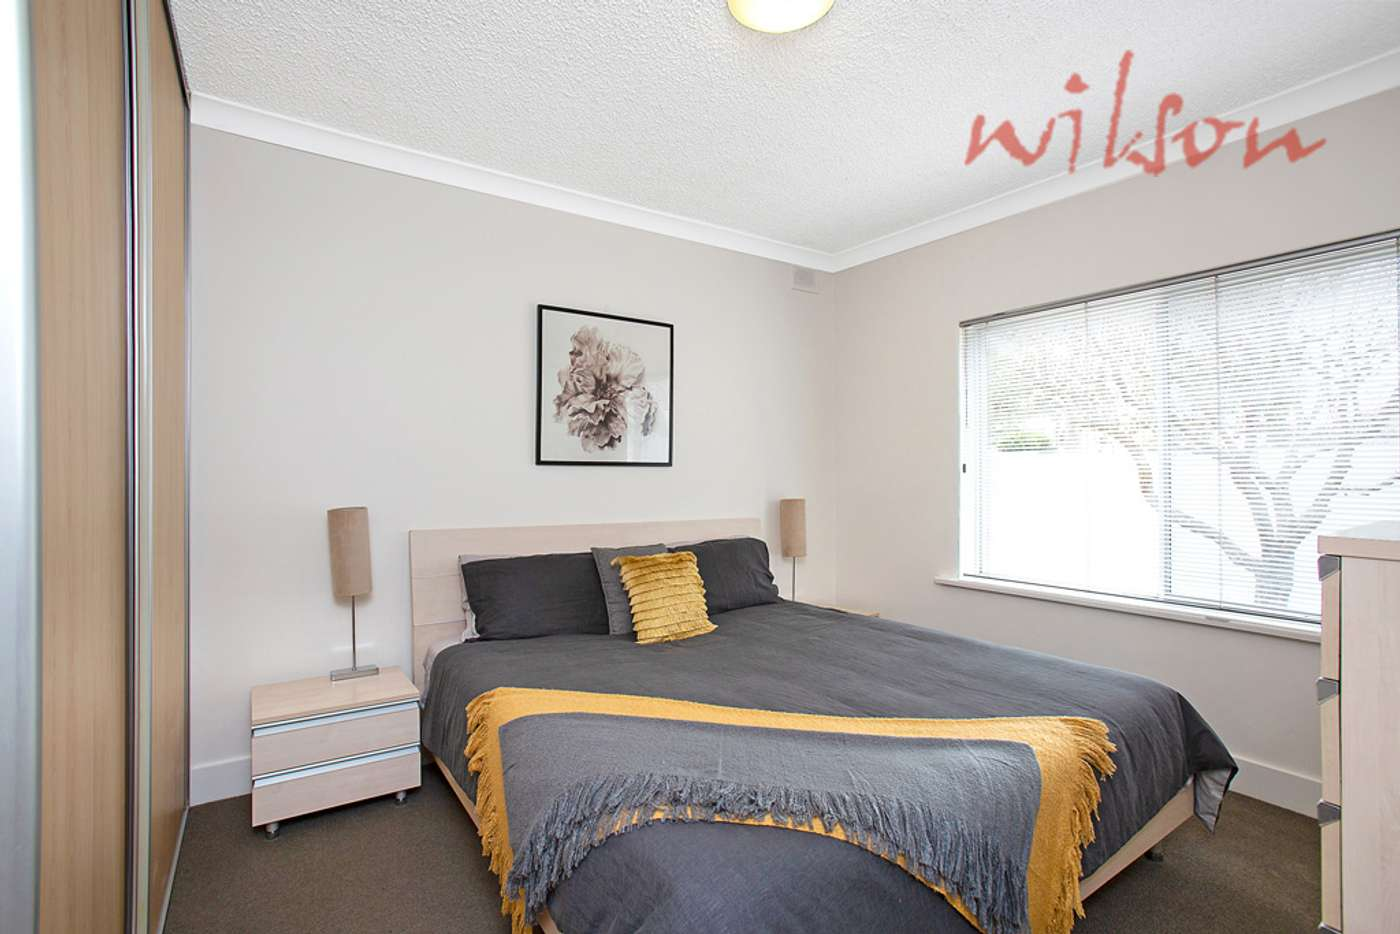 Sixth view of Homely unit listing, 1/5 Roebuck Street, Mile End SA 5031